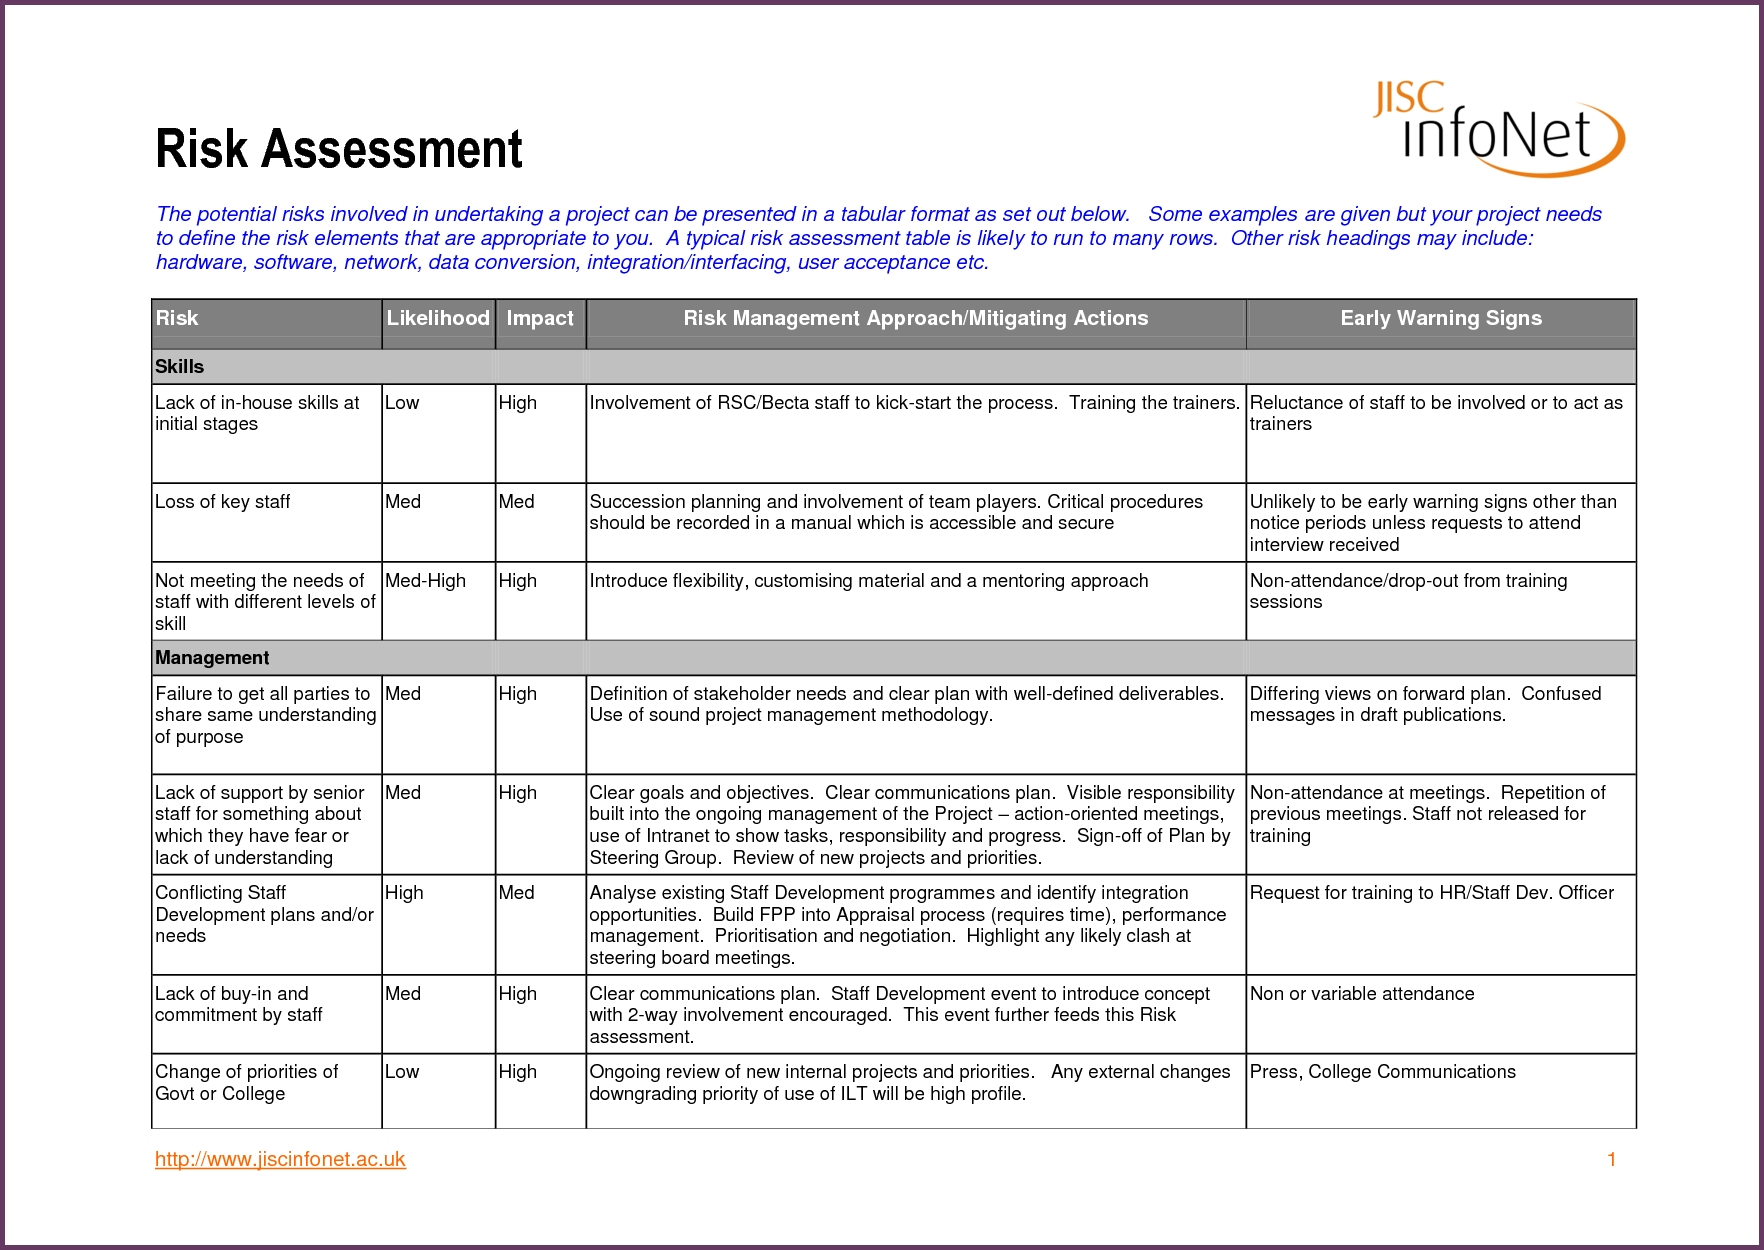 risk assessment table example